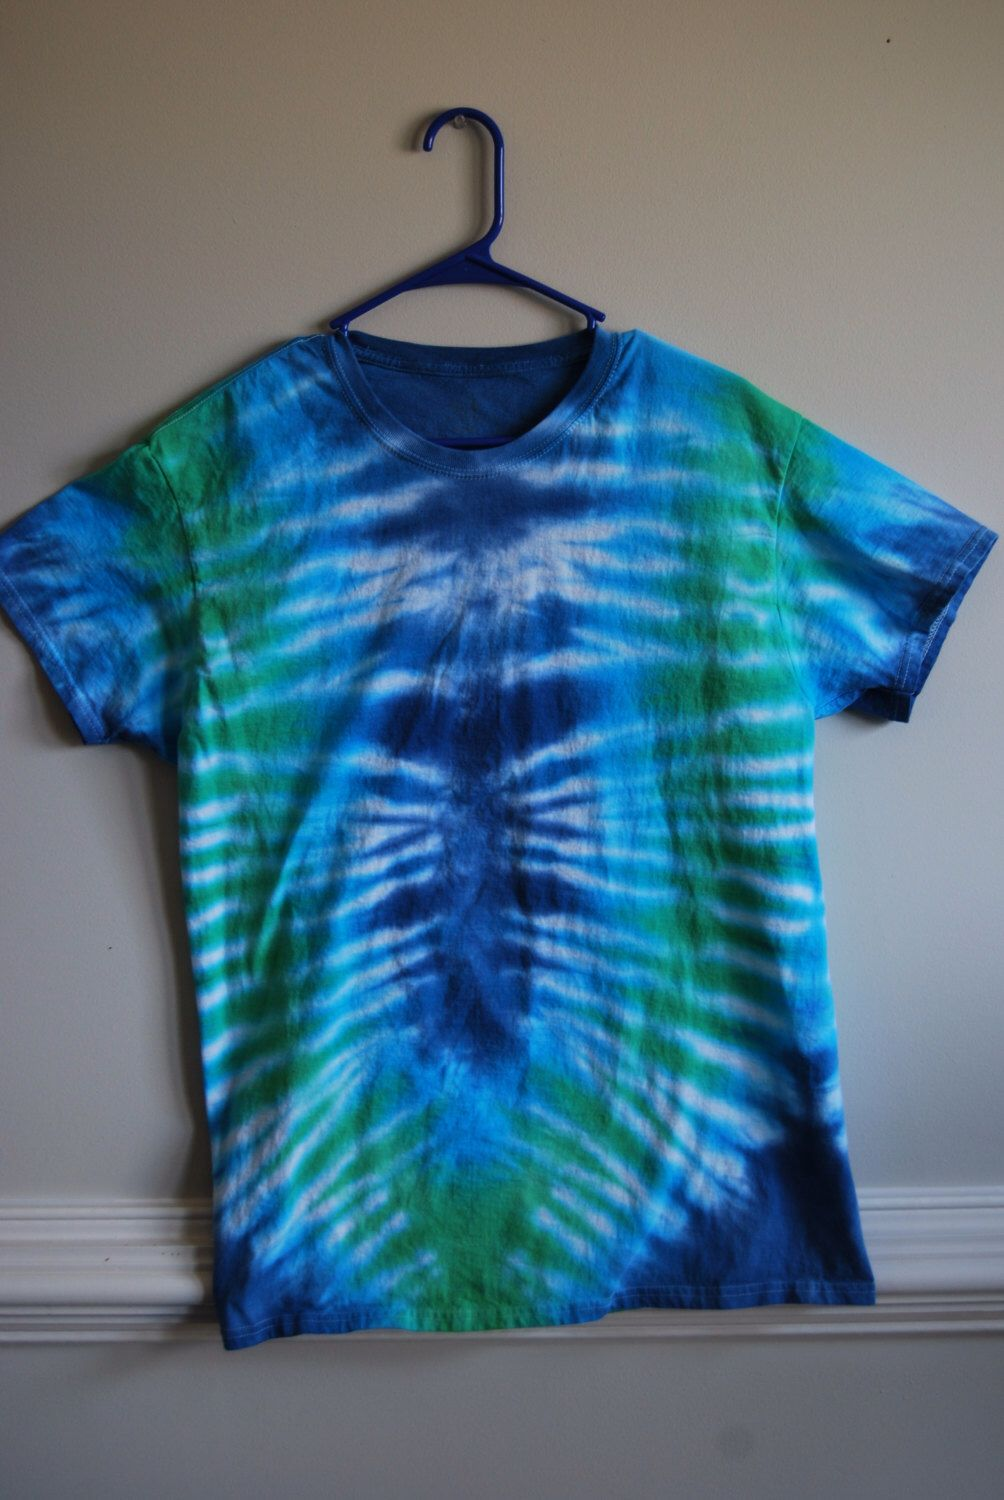 0e50ce30574d Tie dye t-shirt for  15! Unique pleated pattern in a size large!